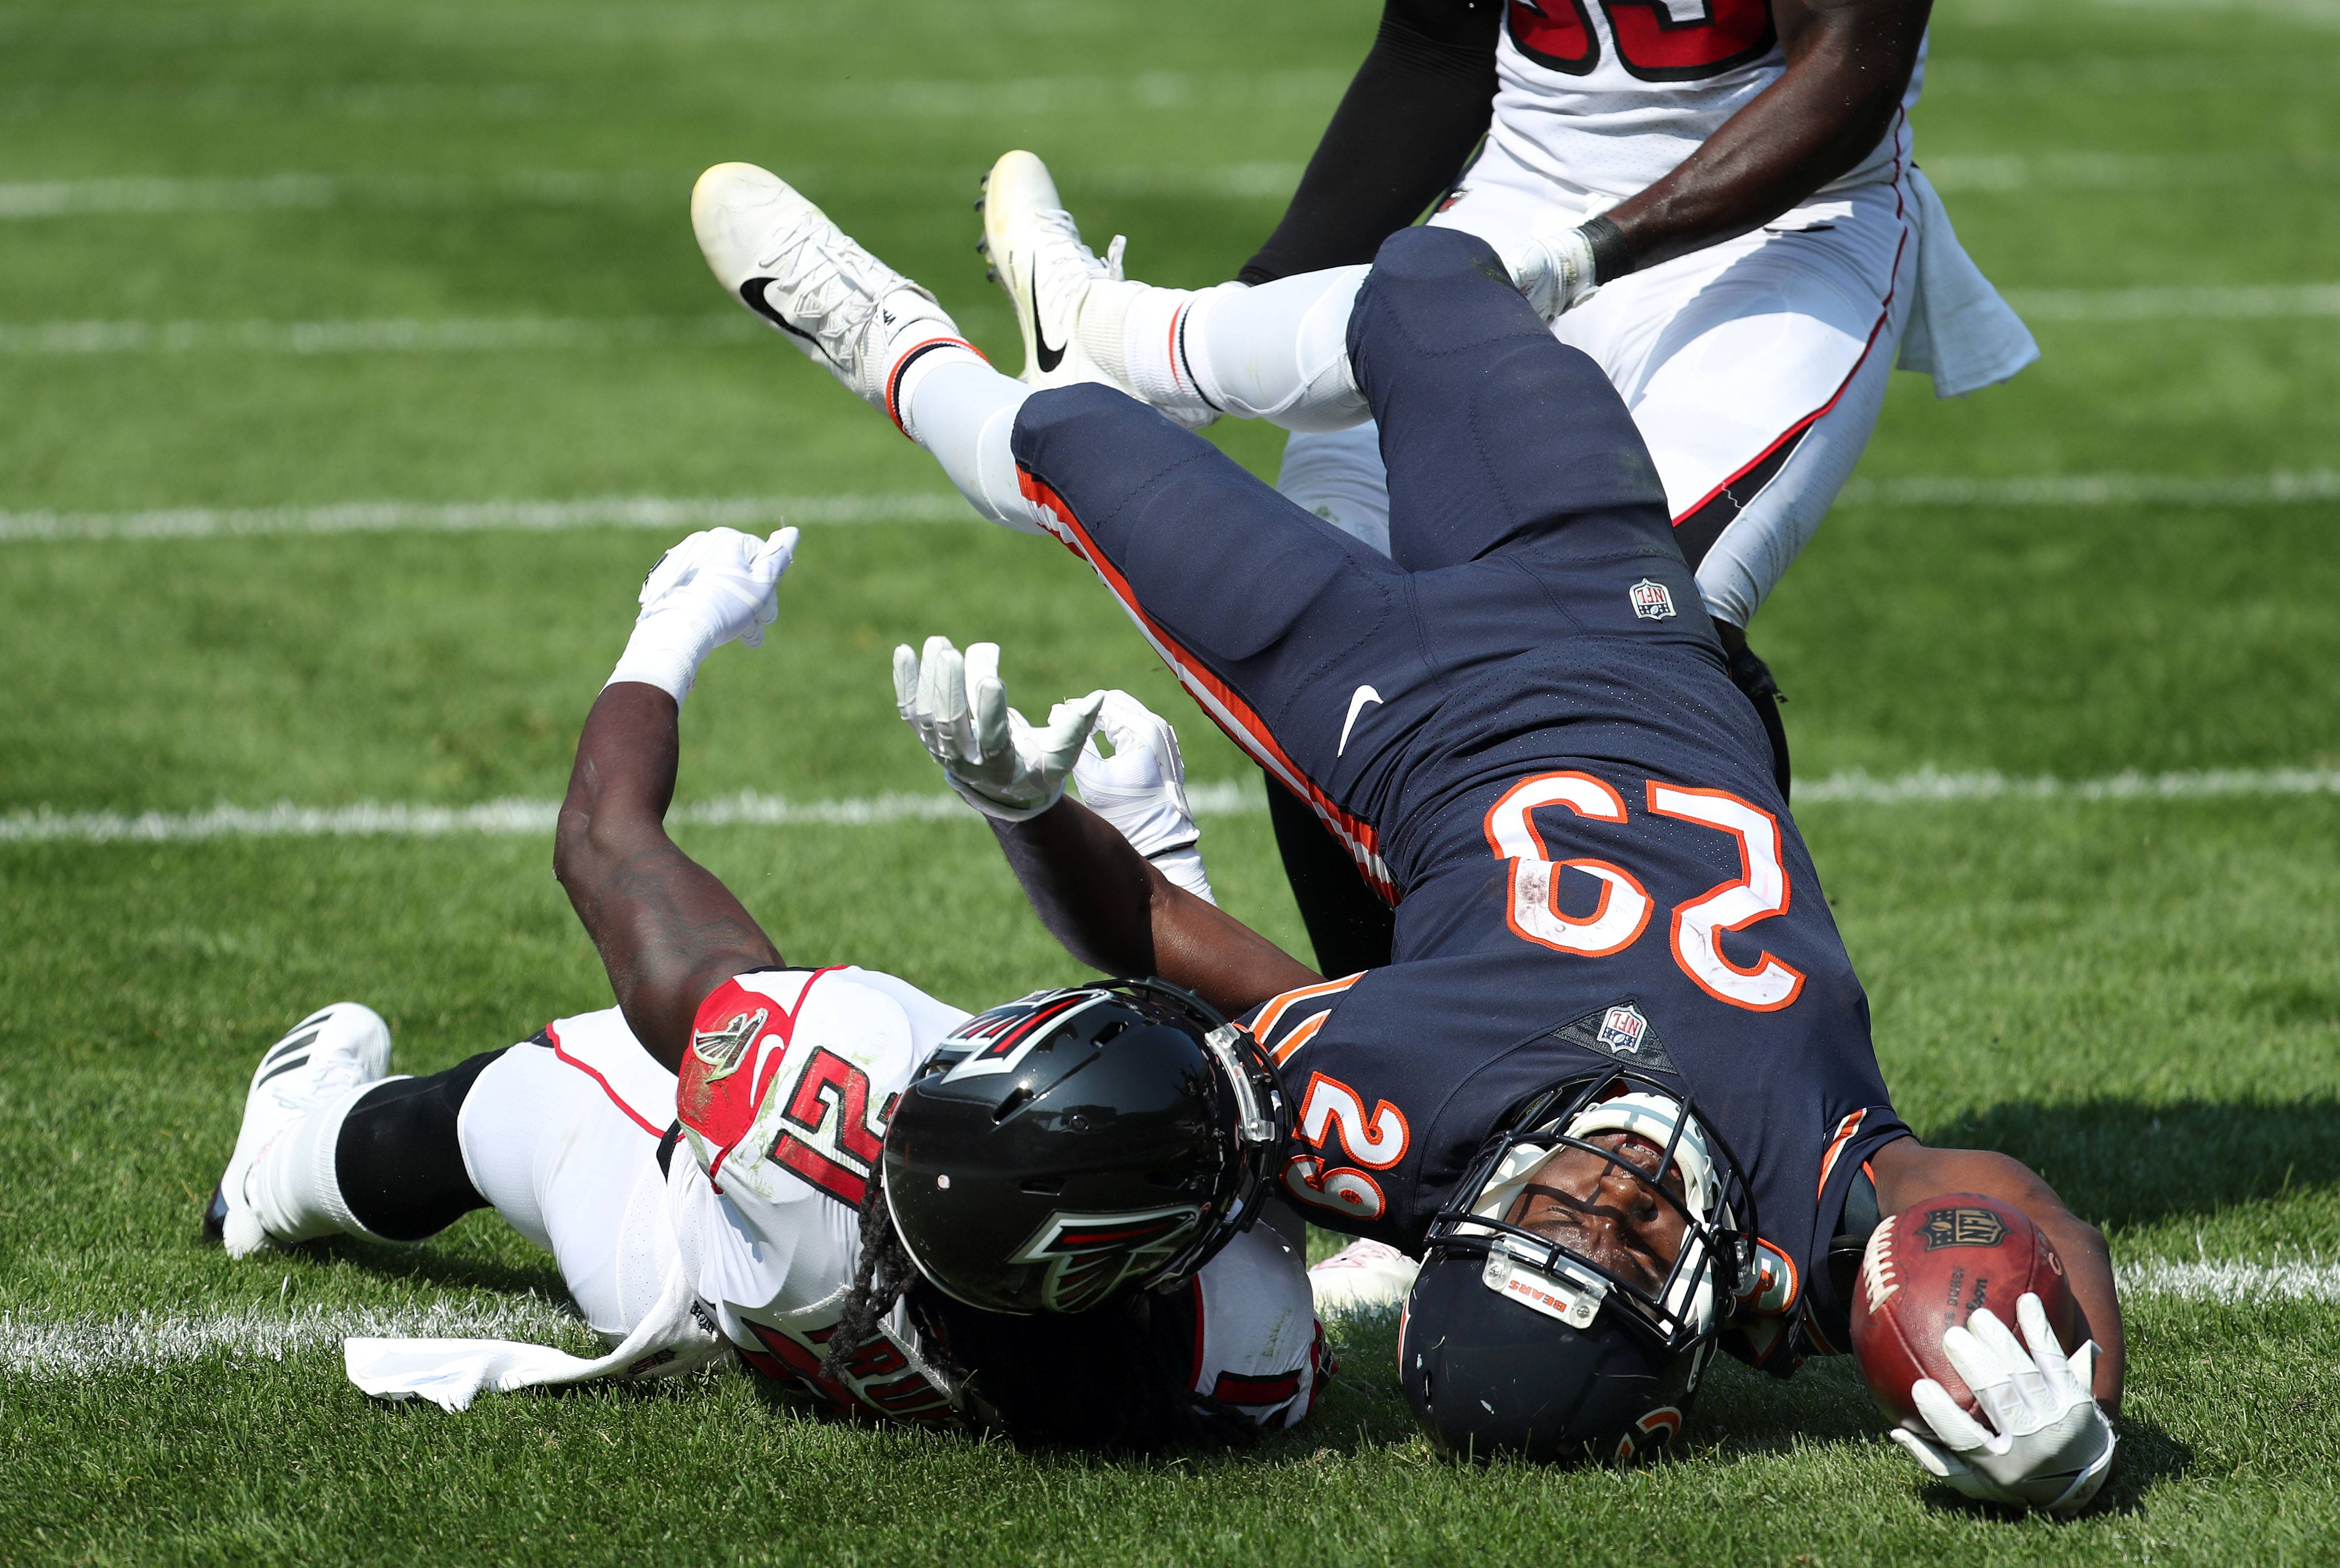 Chicago Bears running back Tarik Cohen stretches in to the end zone during their game Sunday, September 10, 2017 at Soldier Field in Chicago.